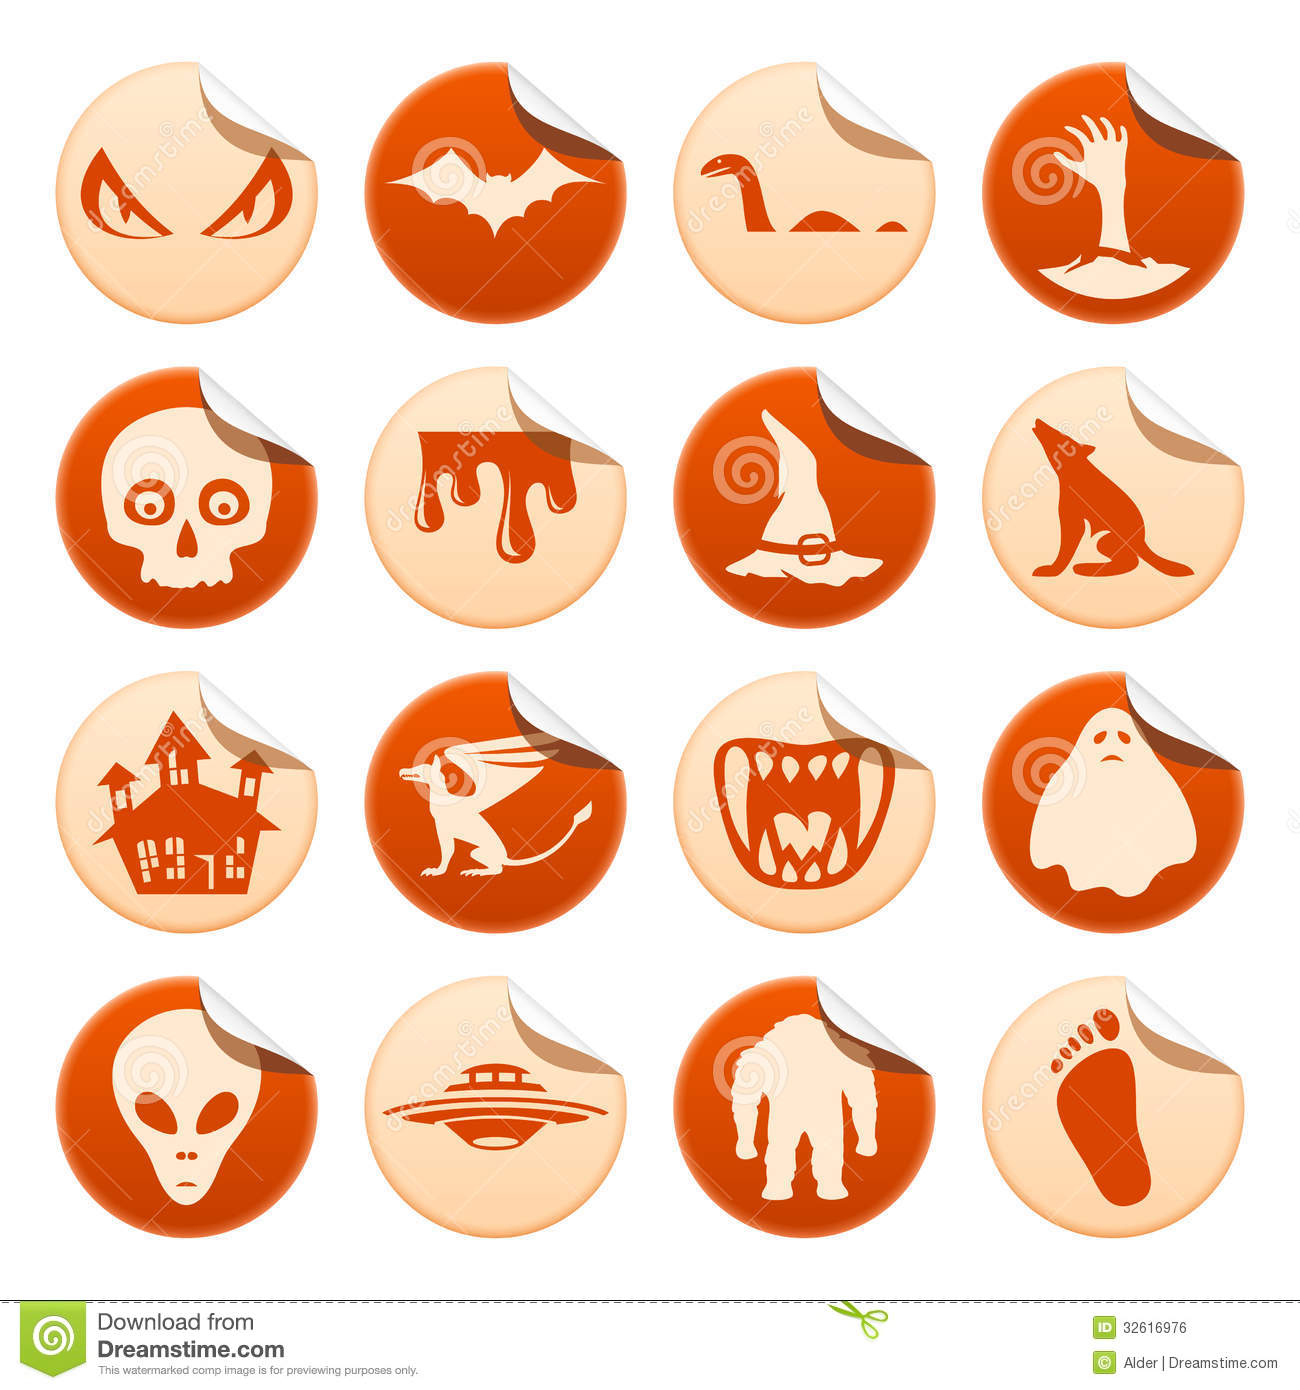 Mystical And Horror Stickers Stock Vector - Illustration of